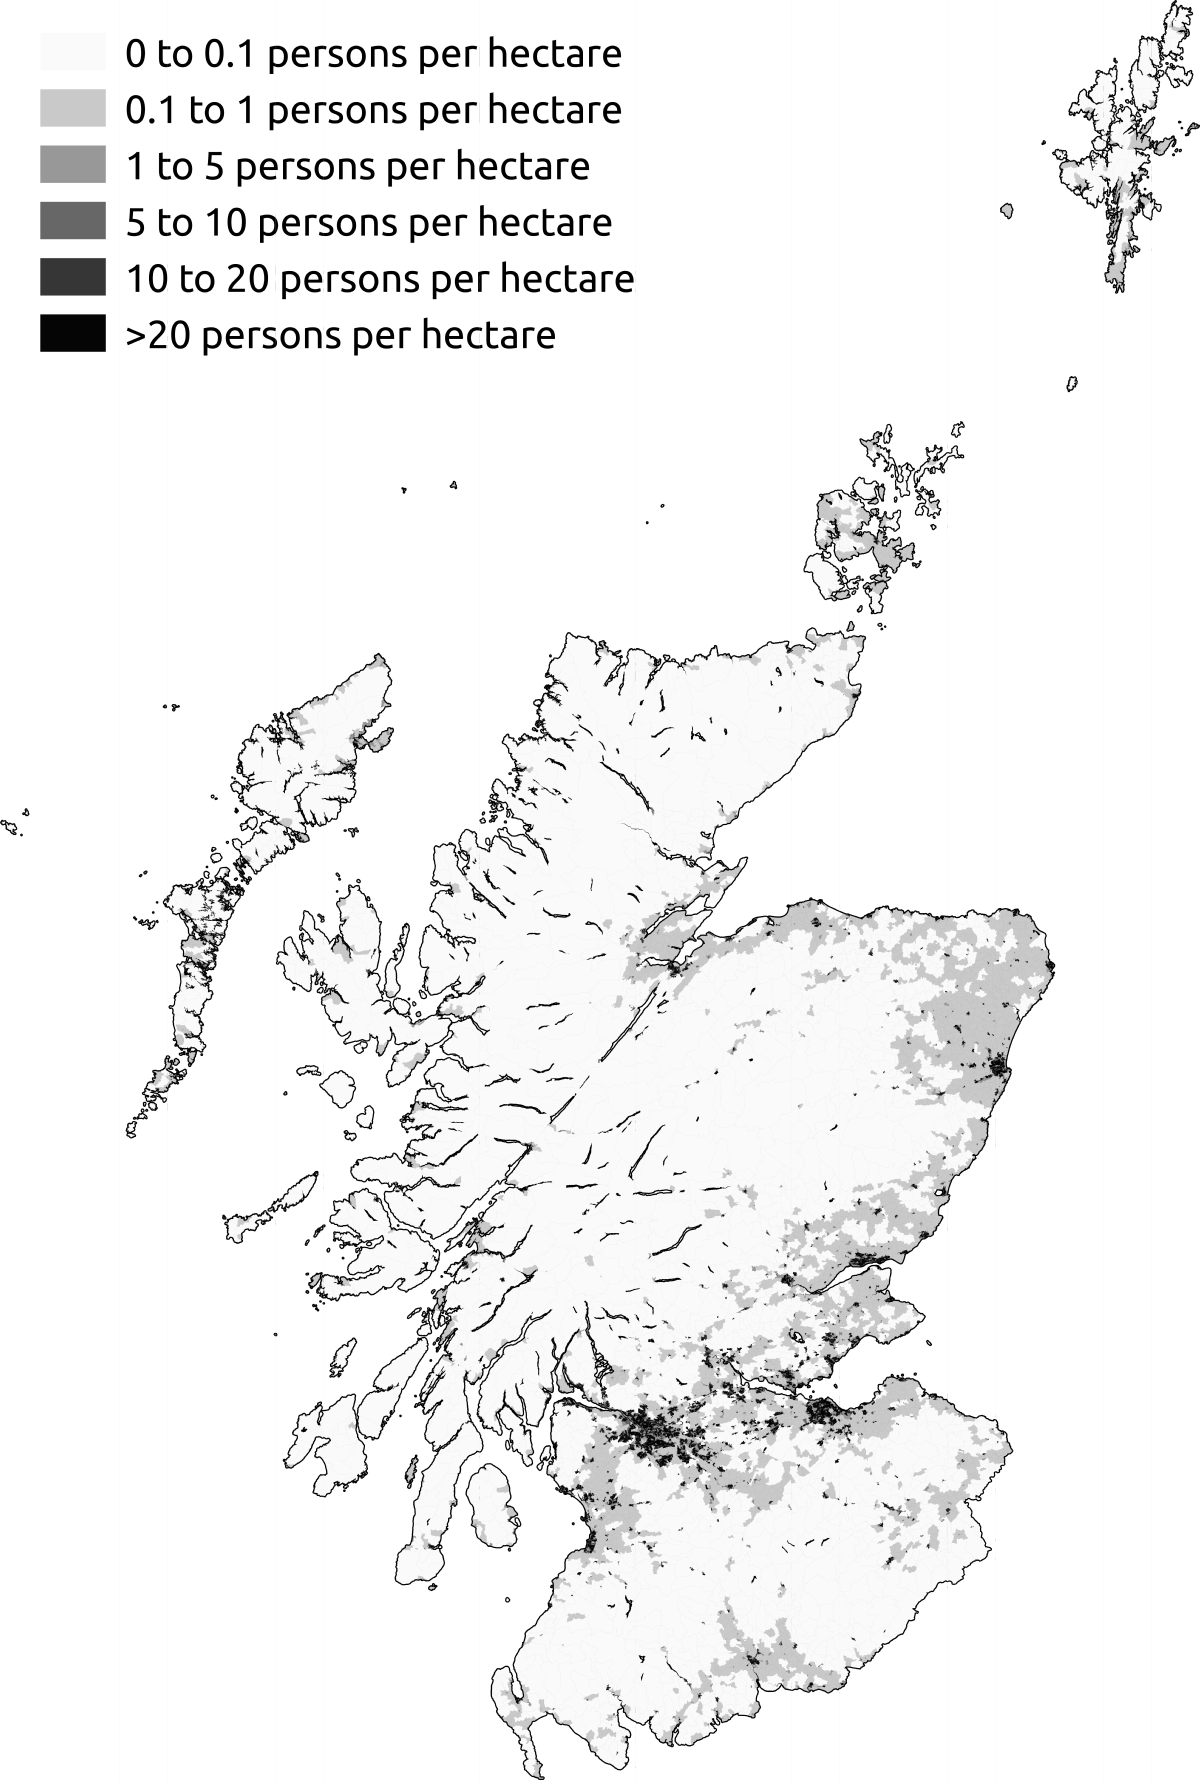 Demography Of Scotland Wikipedia - Australia population density map 2015